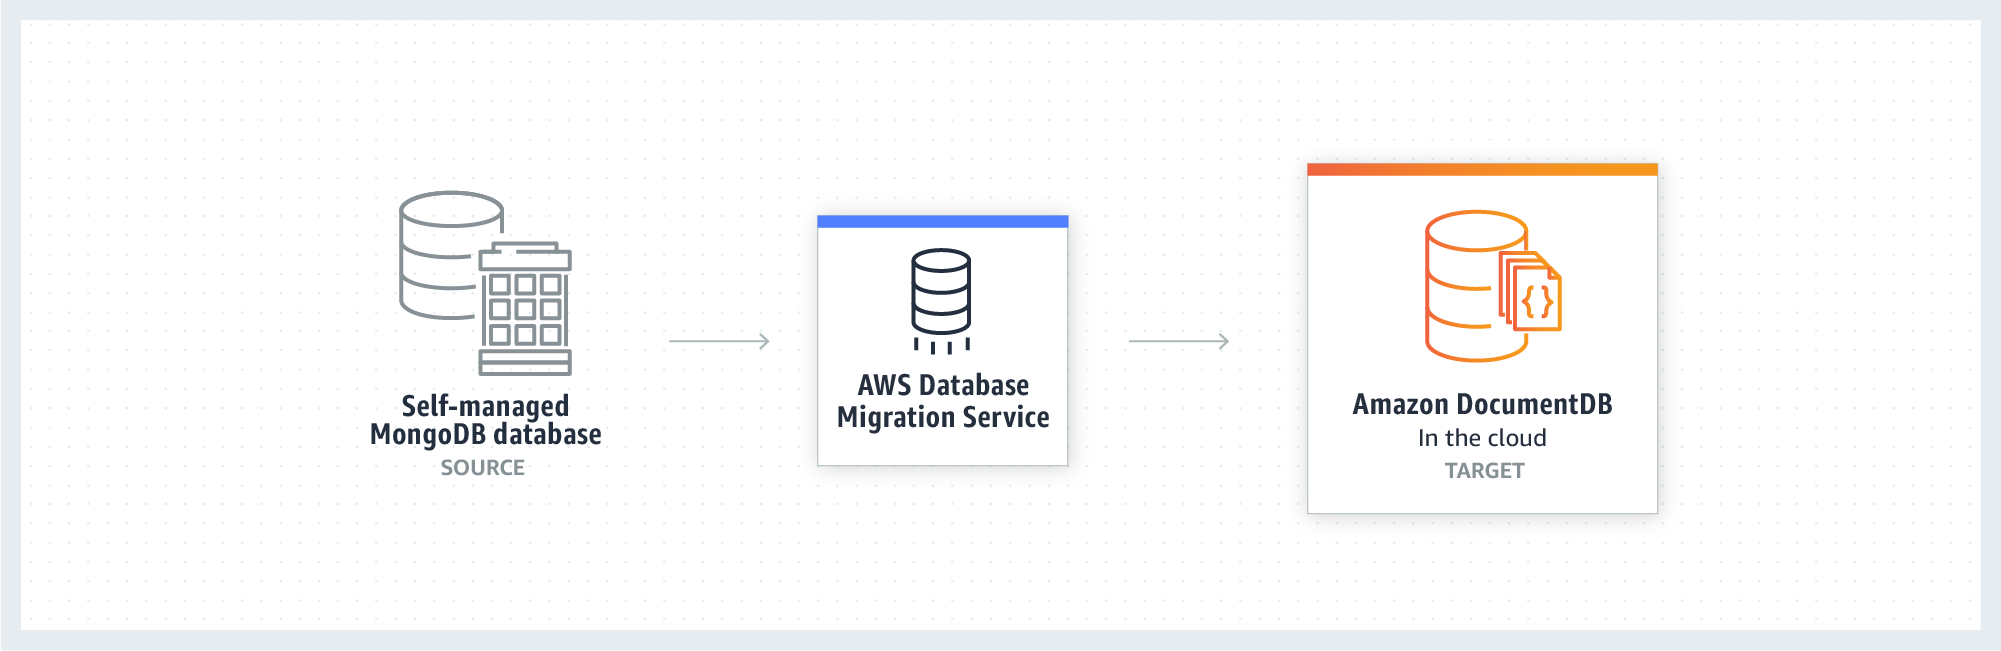 database migration use case diagram